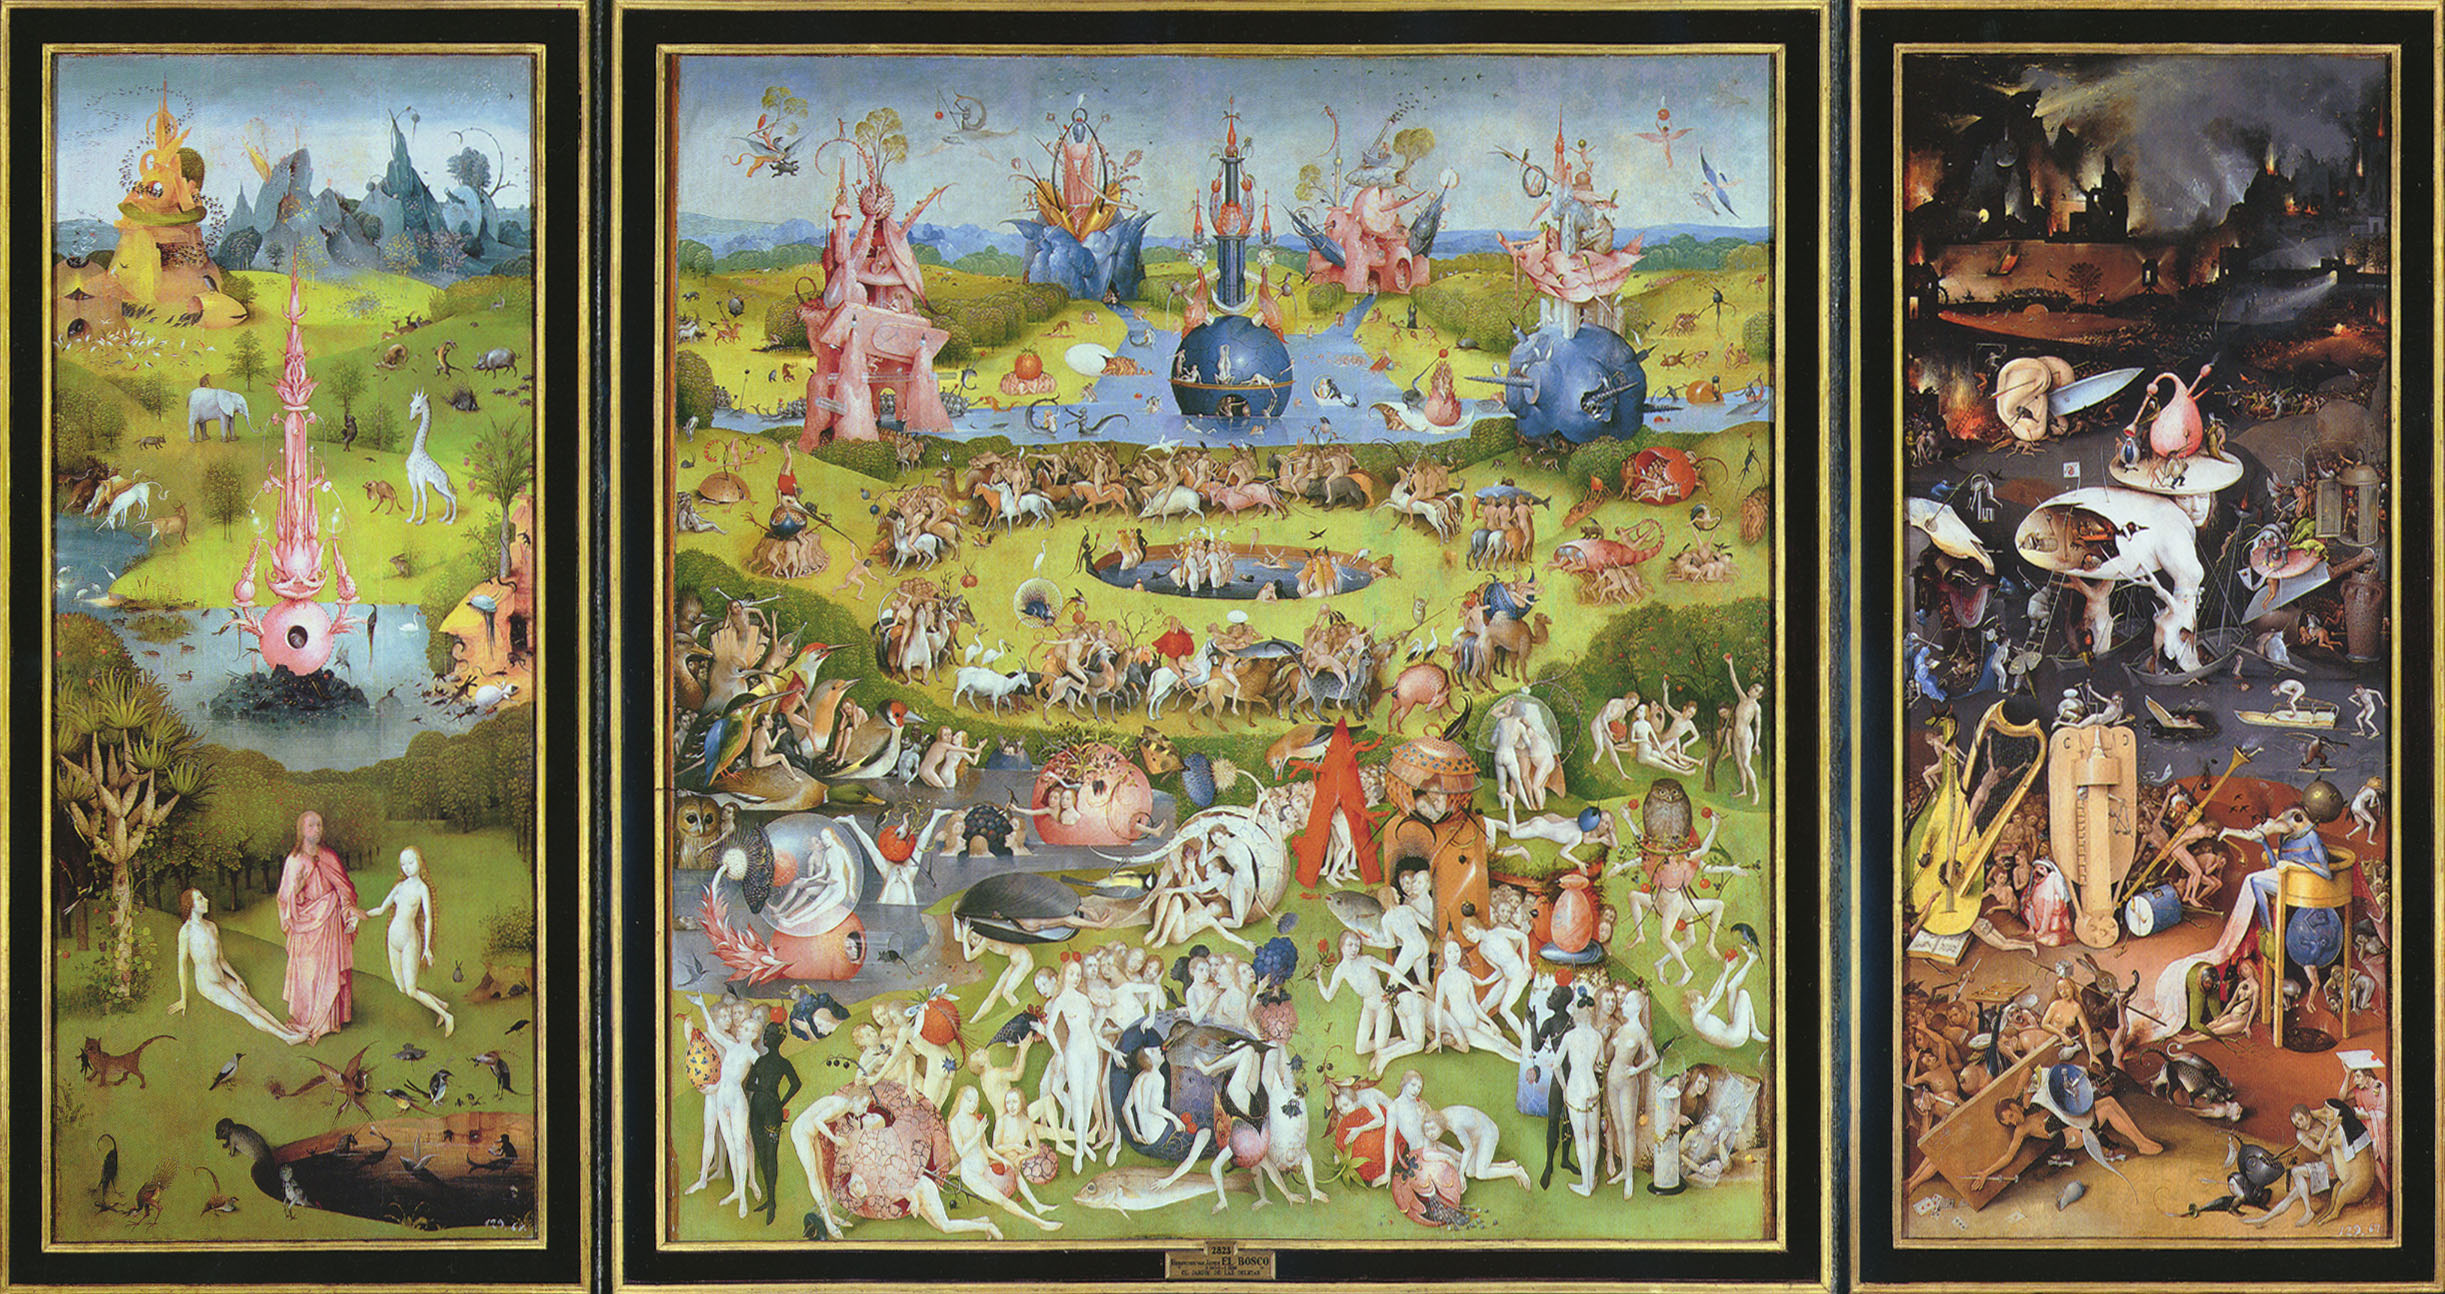 Bosch, The Garden of Earthly Delights